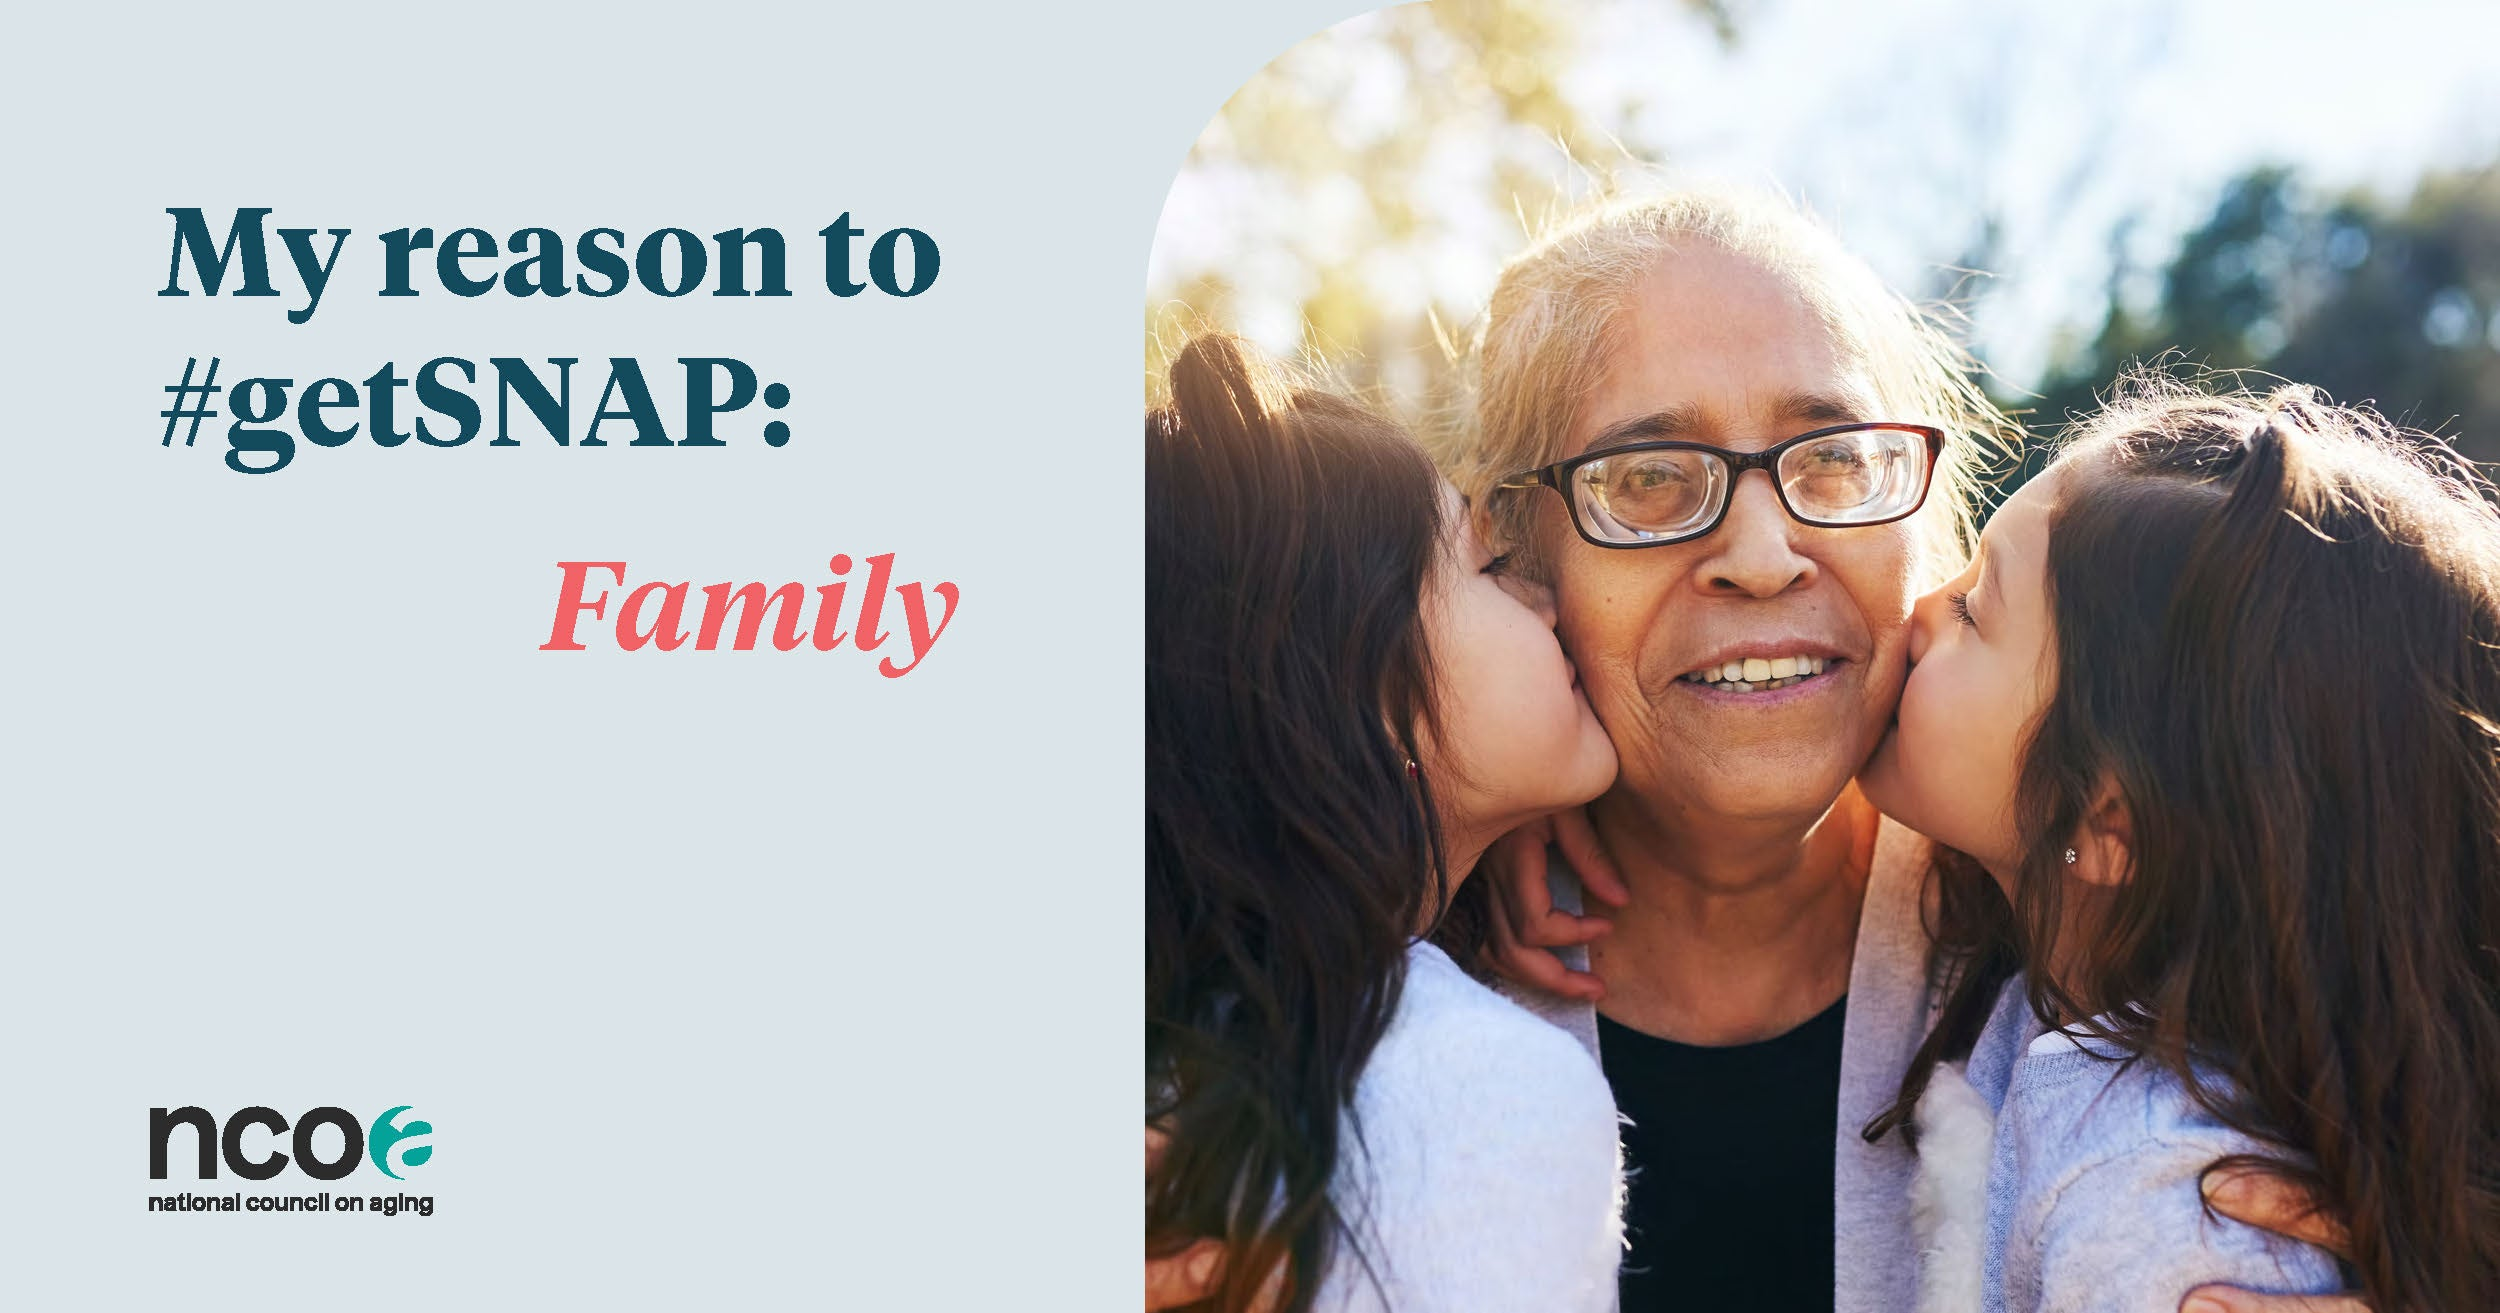 Older woman with grandchildren saying reason to #getSNAP is family